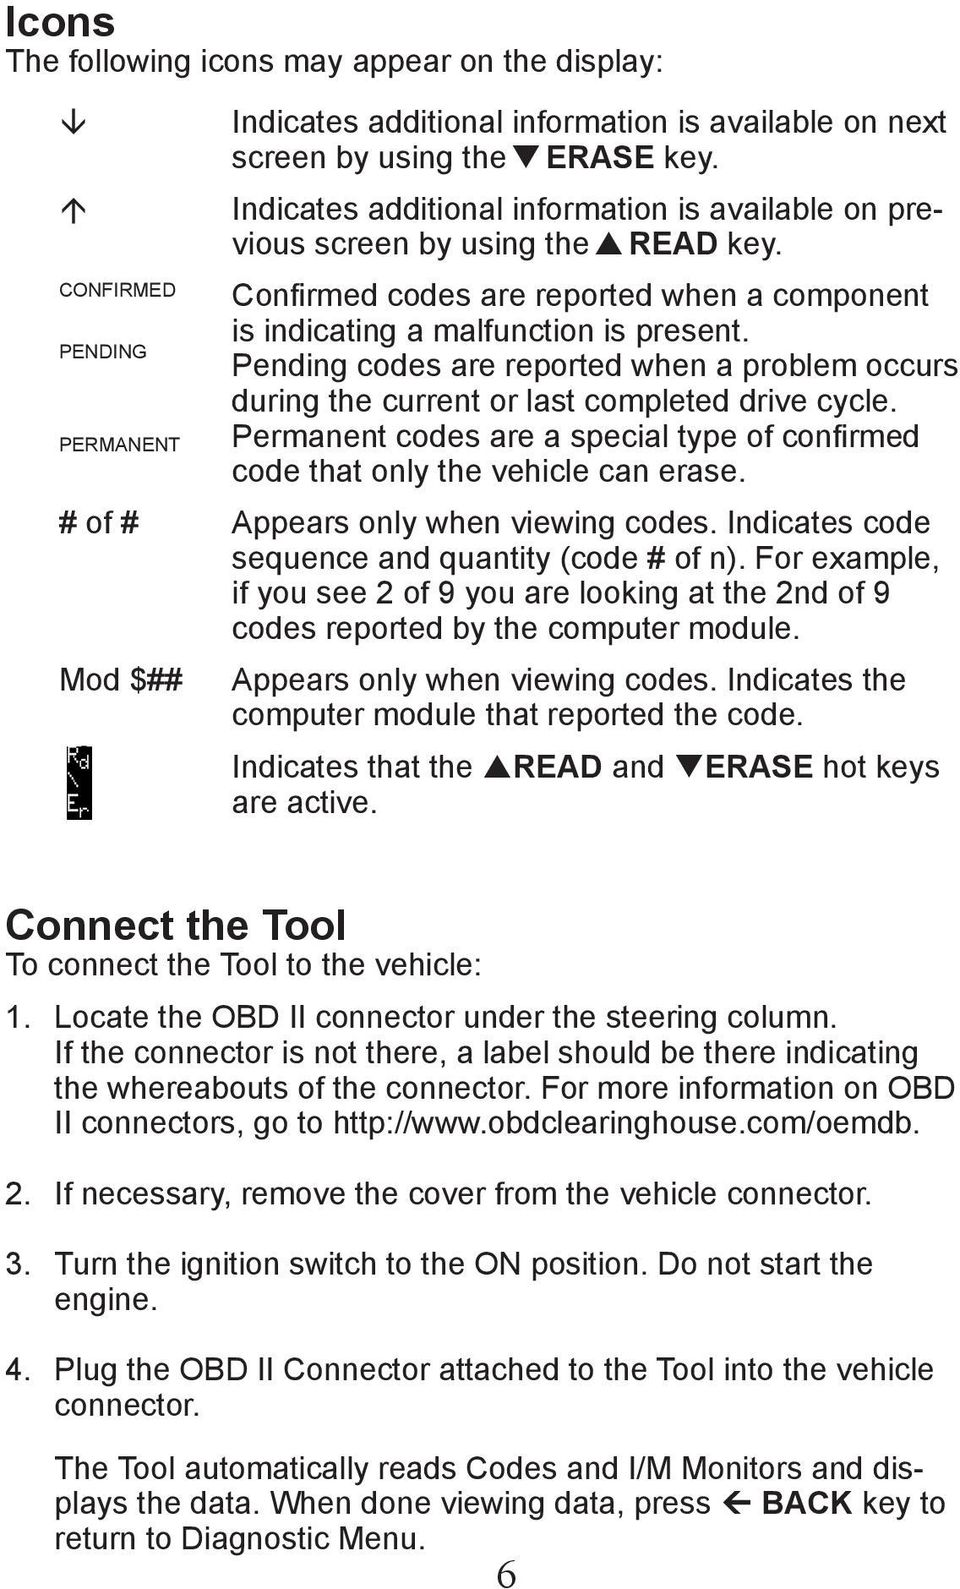 Pending codes are reported when a problem occurs during the current or last completed drive cycle. Permanent codes are a special type of confirmed code that only the vehicle can erase.